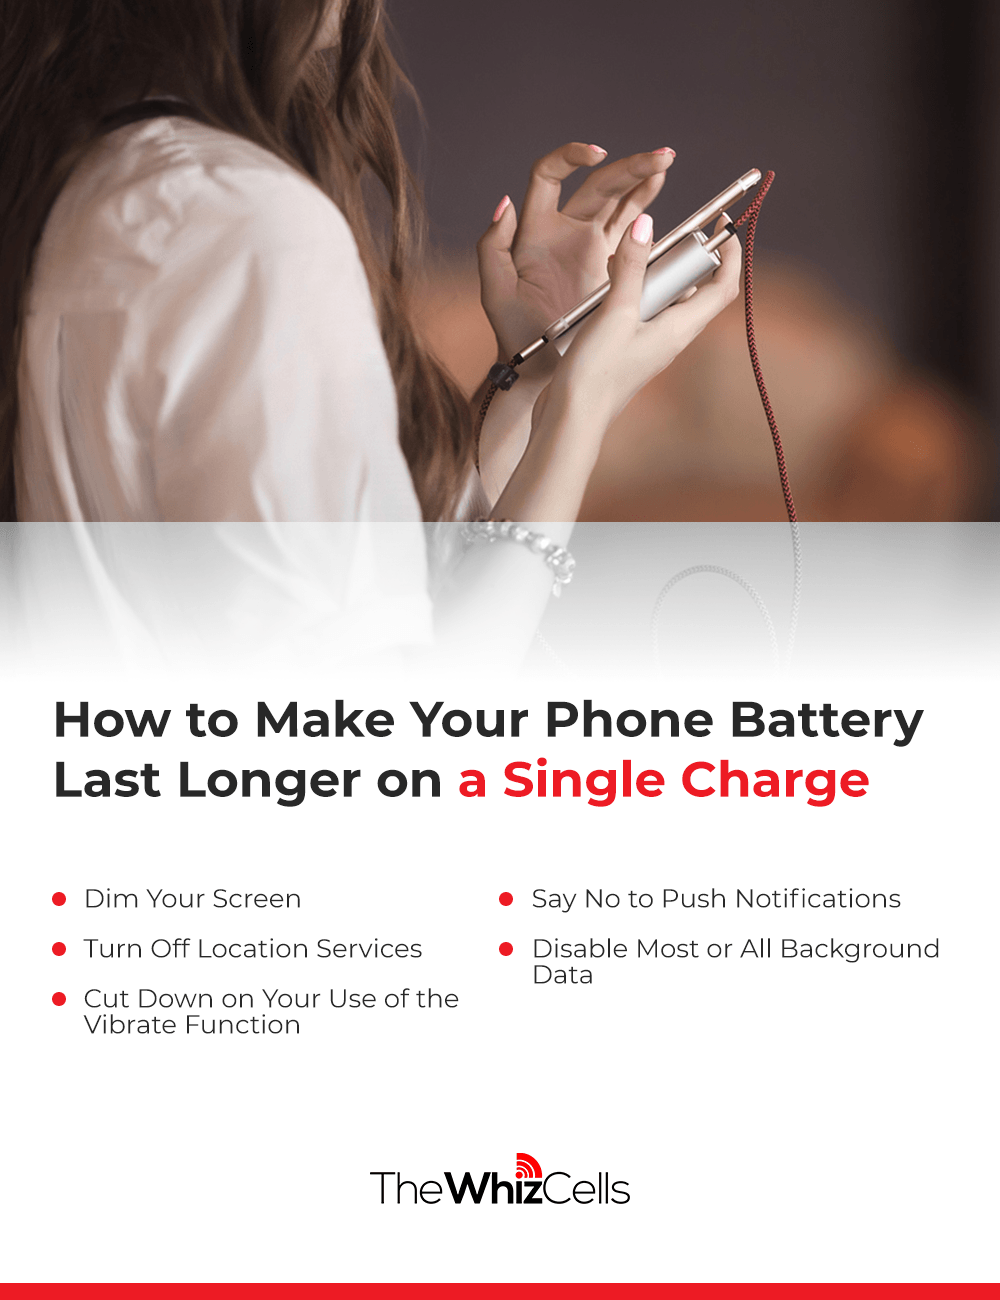 How to Make Your Phone Battery Last Longer on a Single Charge